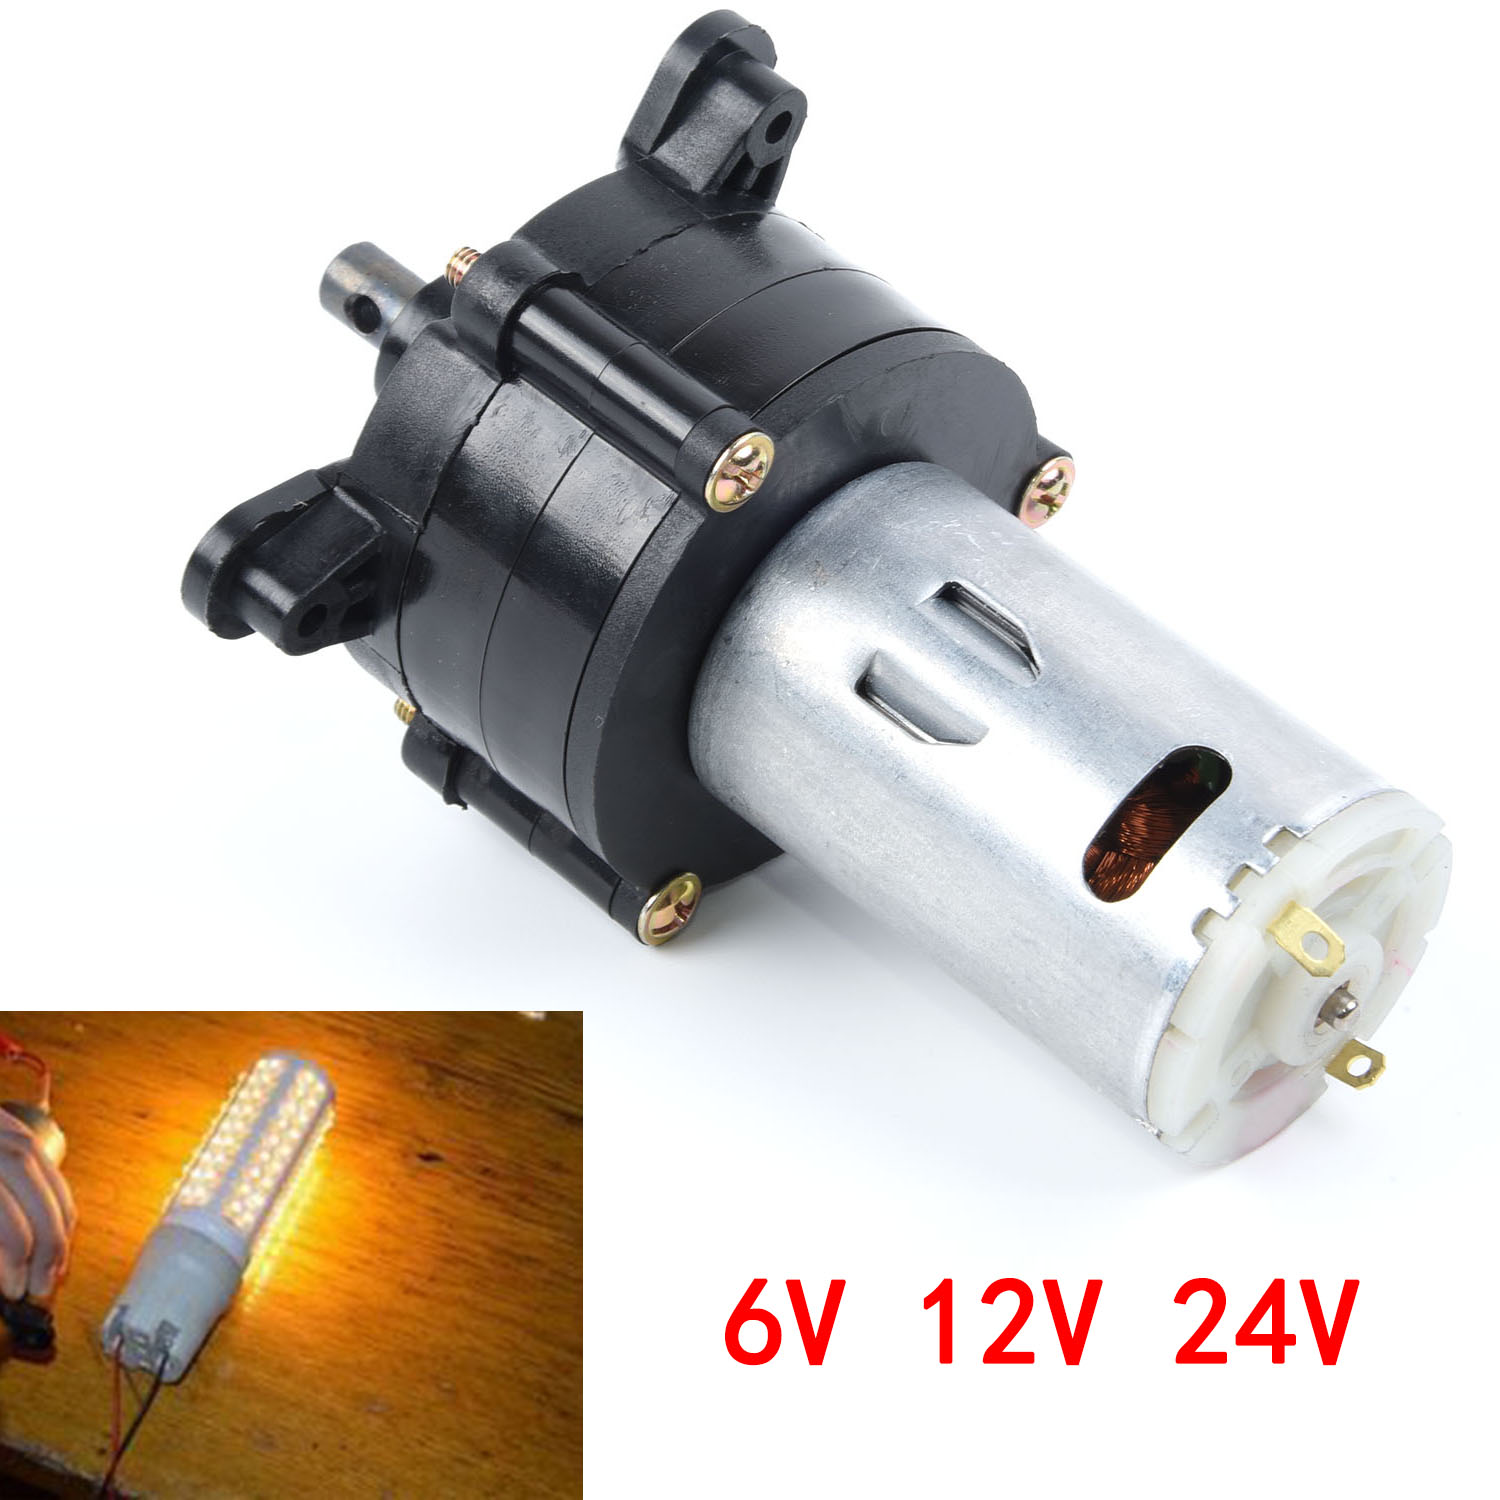 New Arrival Black+Silver DC 6V 12V 24V Generator Hand Dynamo Hydraulic Test Generator Power Supply